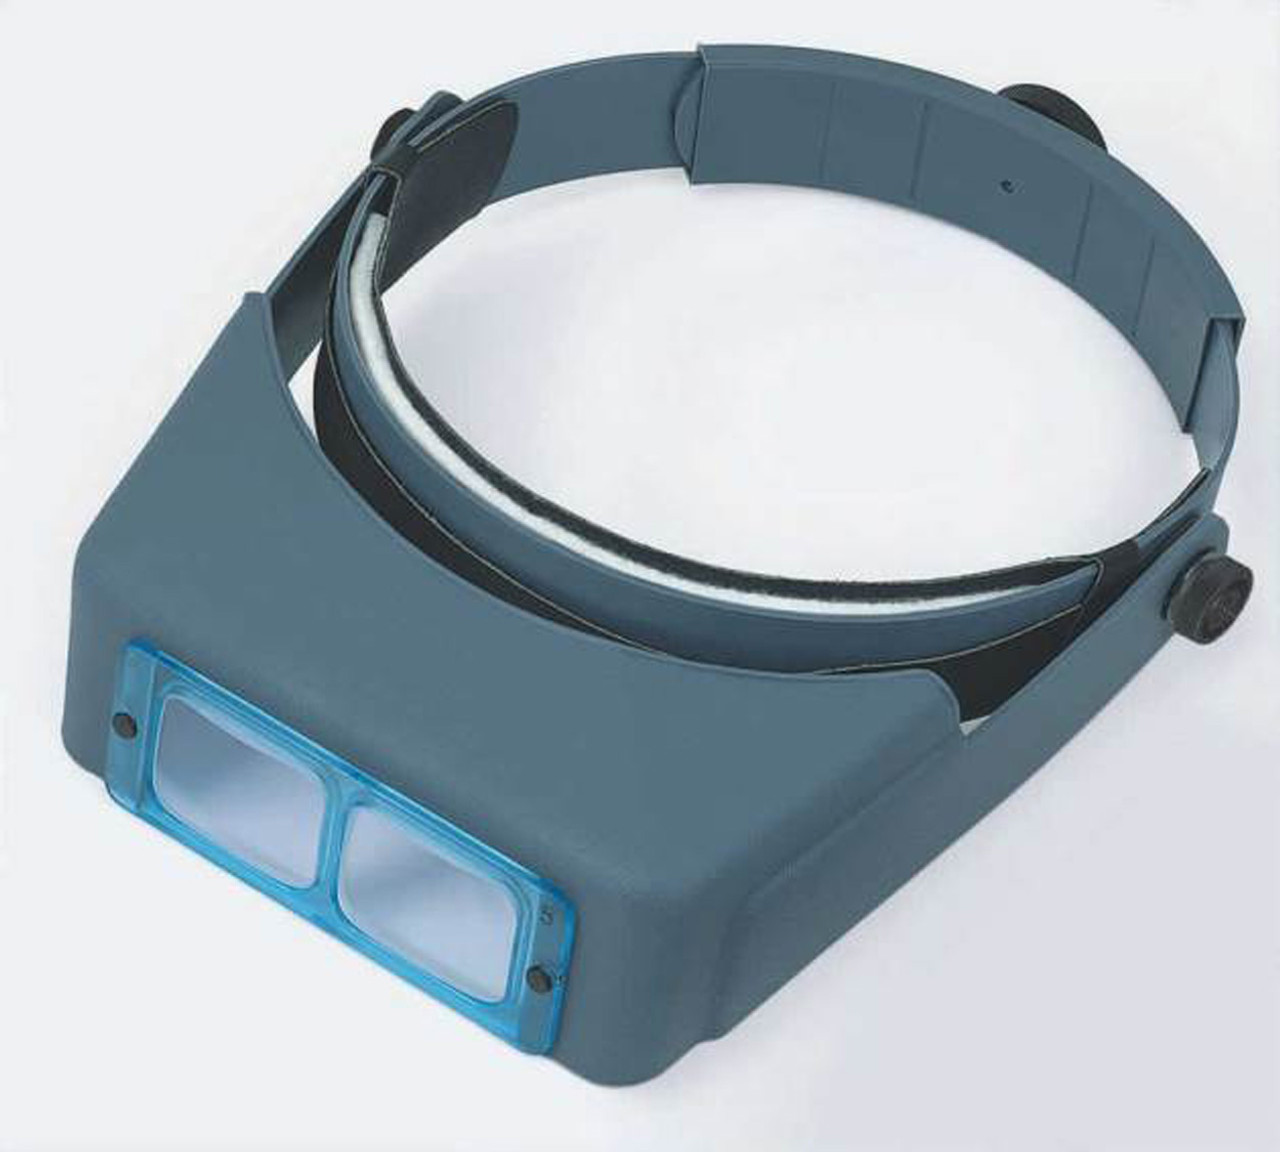 2x OptiVISOR Headset Magnifier